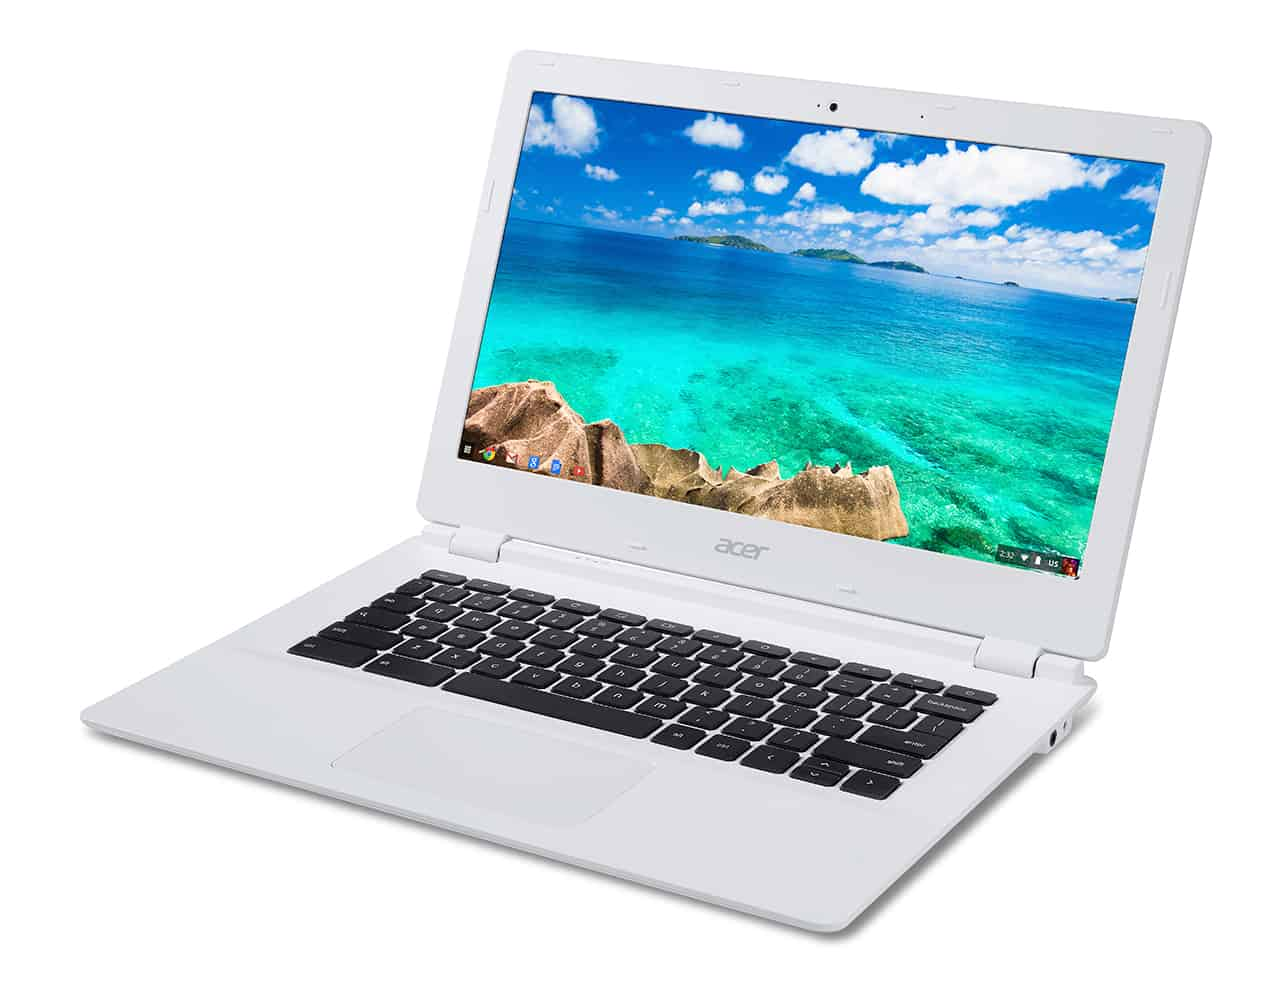 Acer Chromebook 13 CB5 311 AcerWP start bar 03